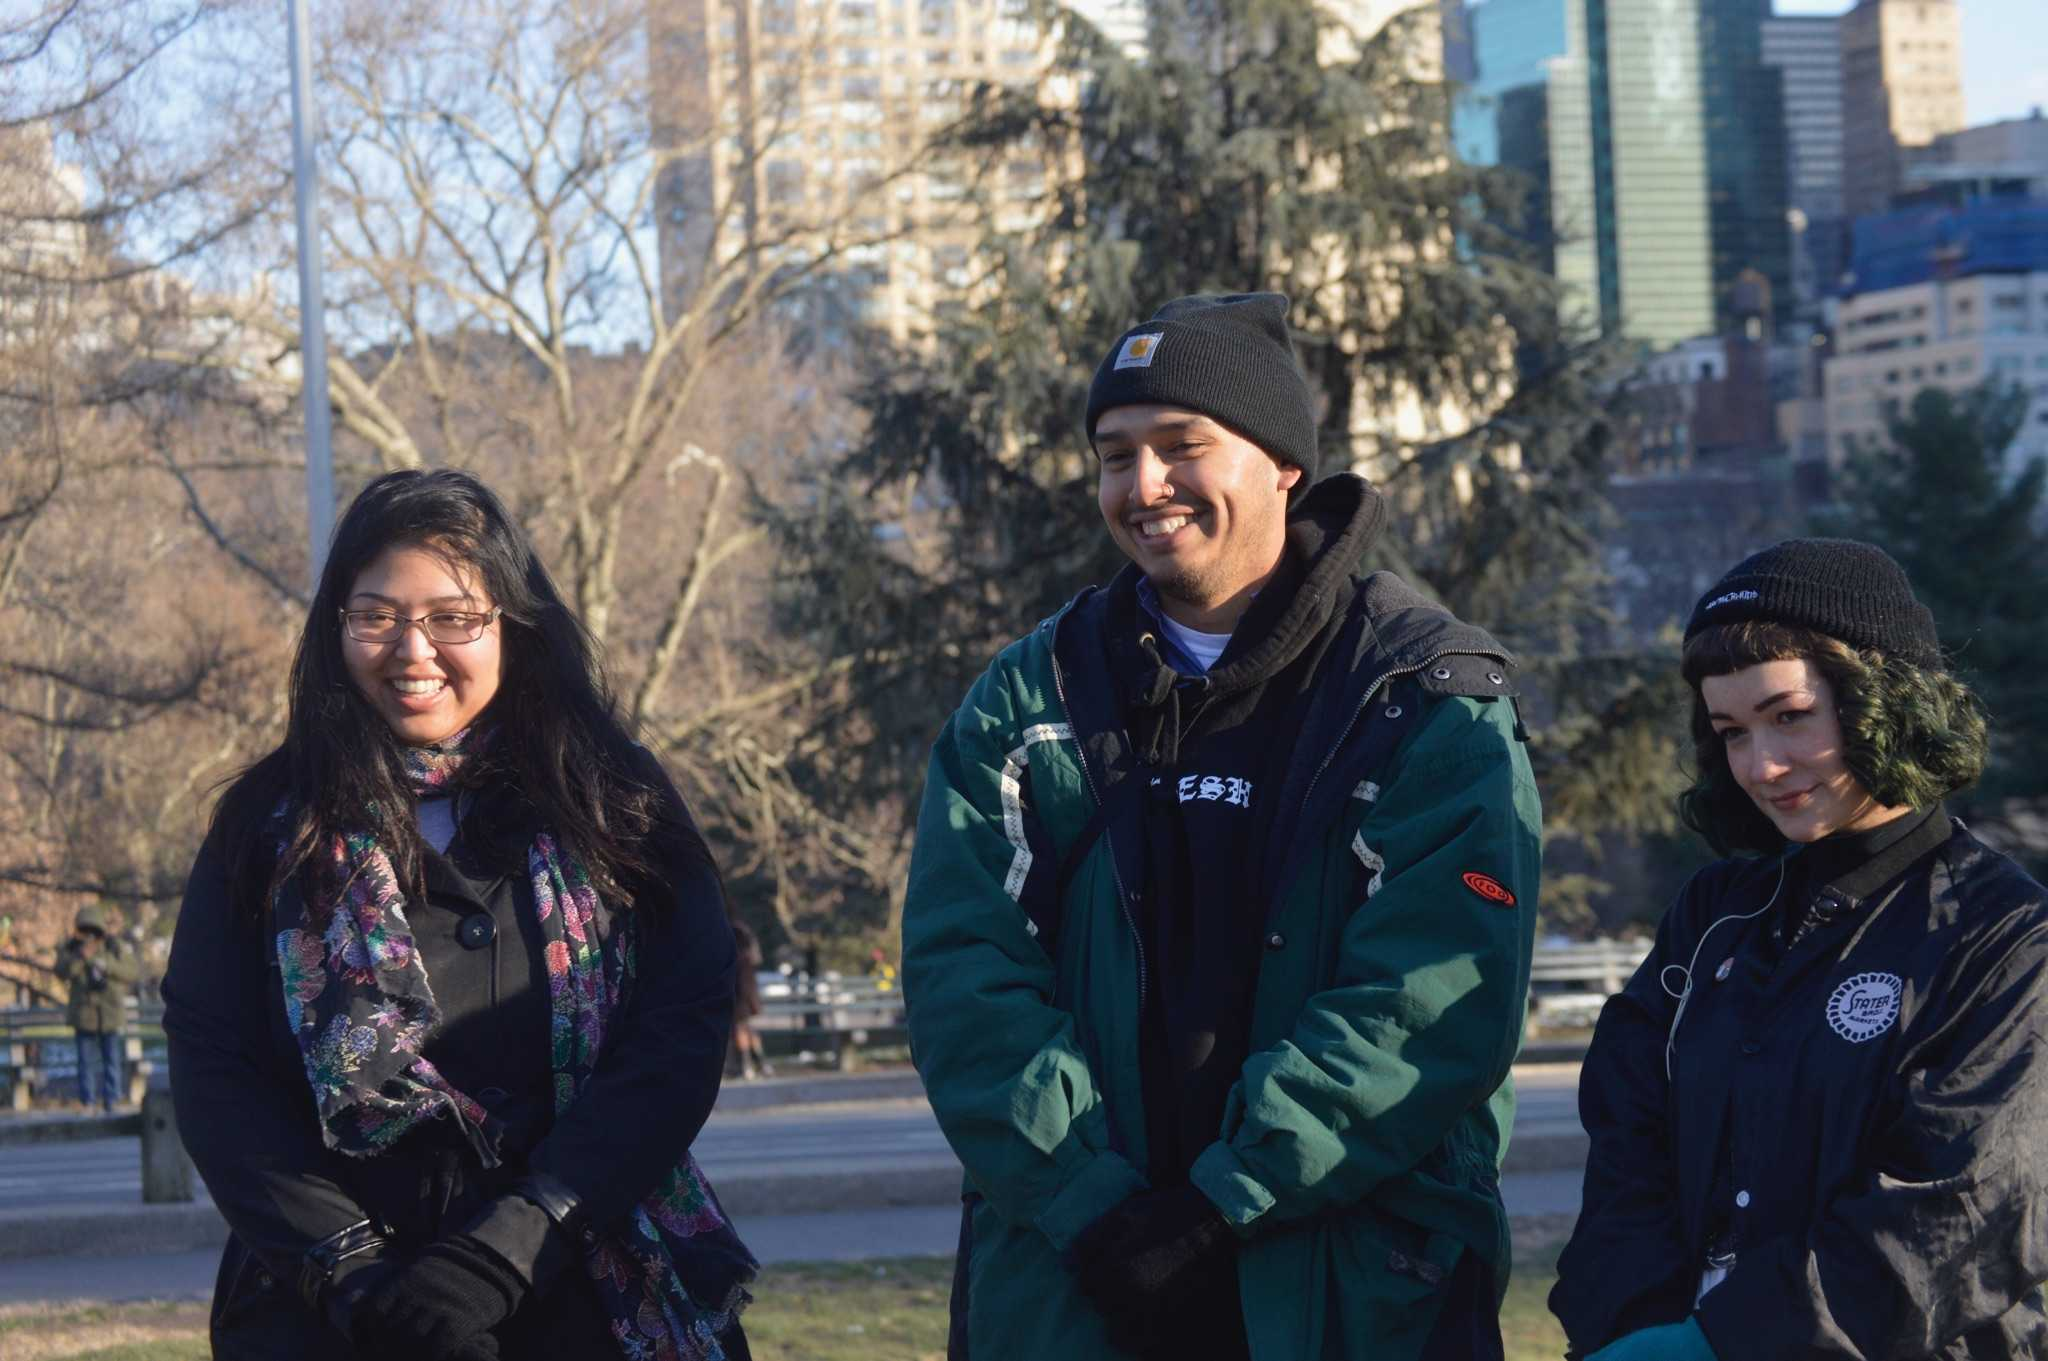 Nohemy Barrera, Jorge Villa and Emma DiMaggio went to Central Park in New York City before the snowstorm Stella hot the east coast. The three are staff writers for The Union, El Camino's student-run newspaper.